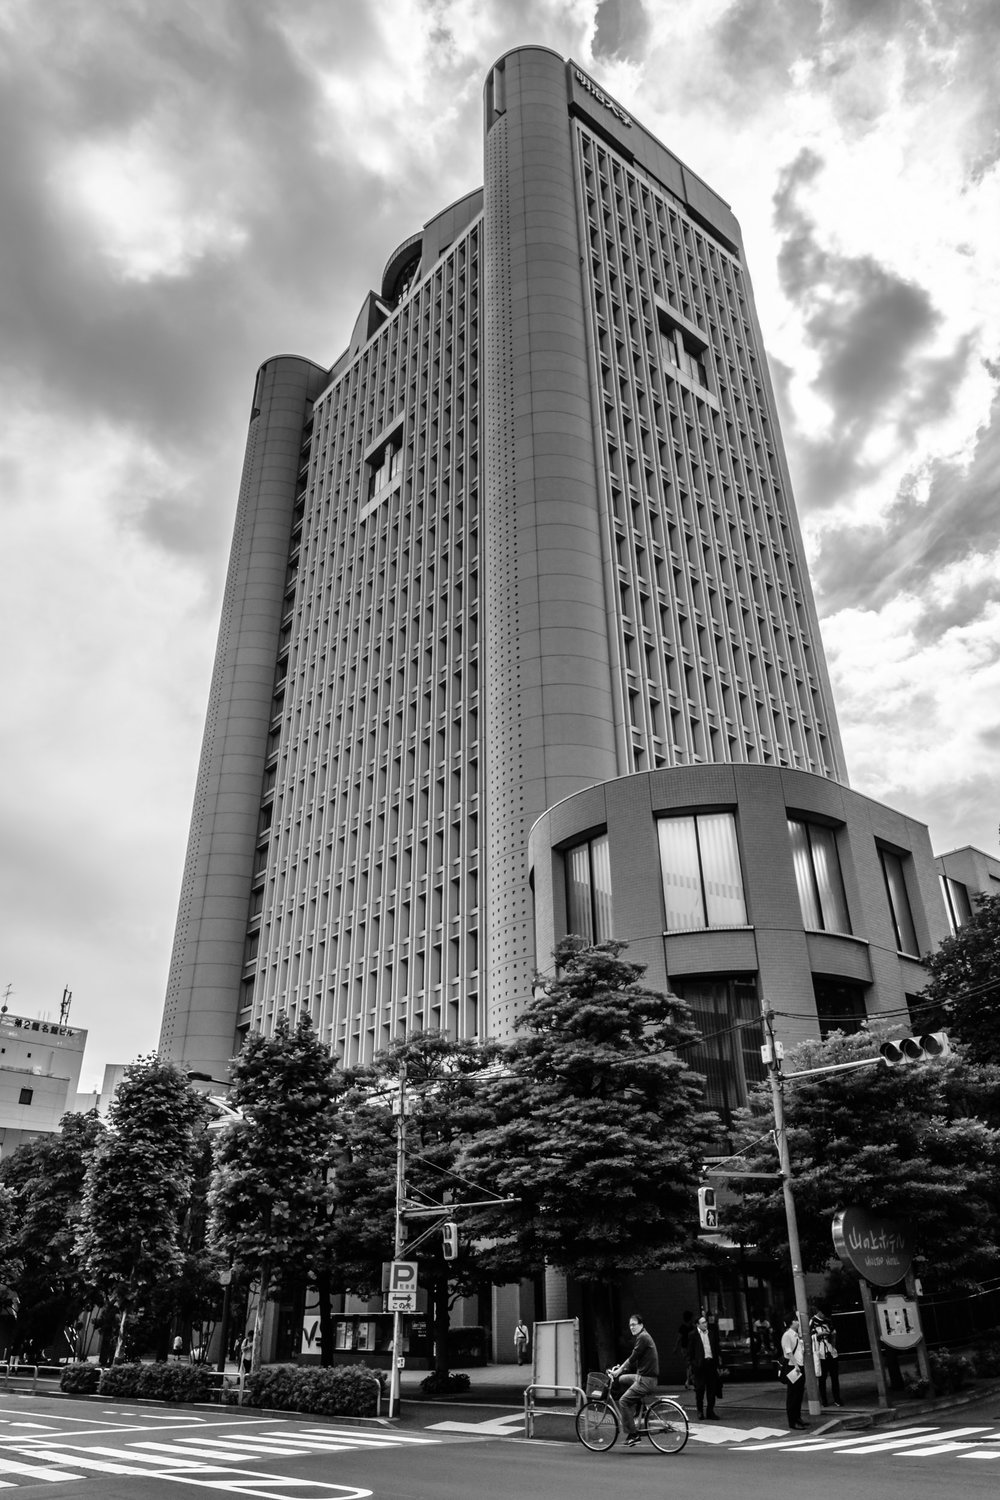 Meiji University's Liberty Tower